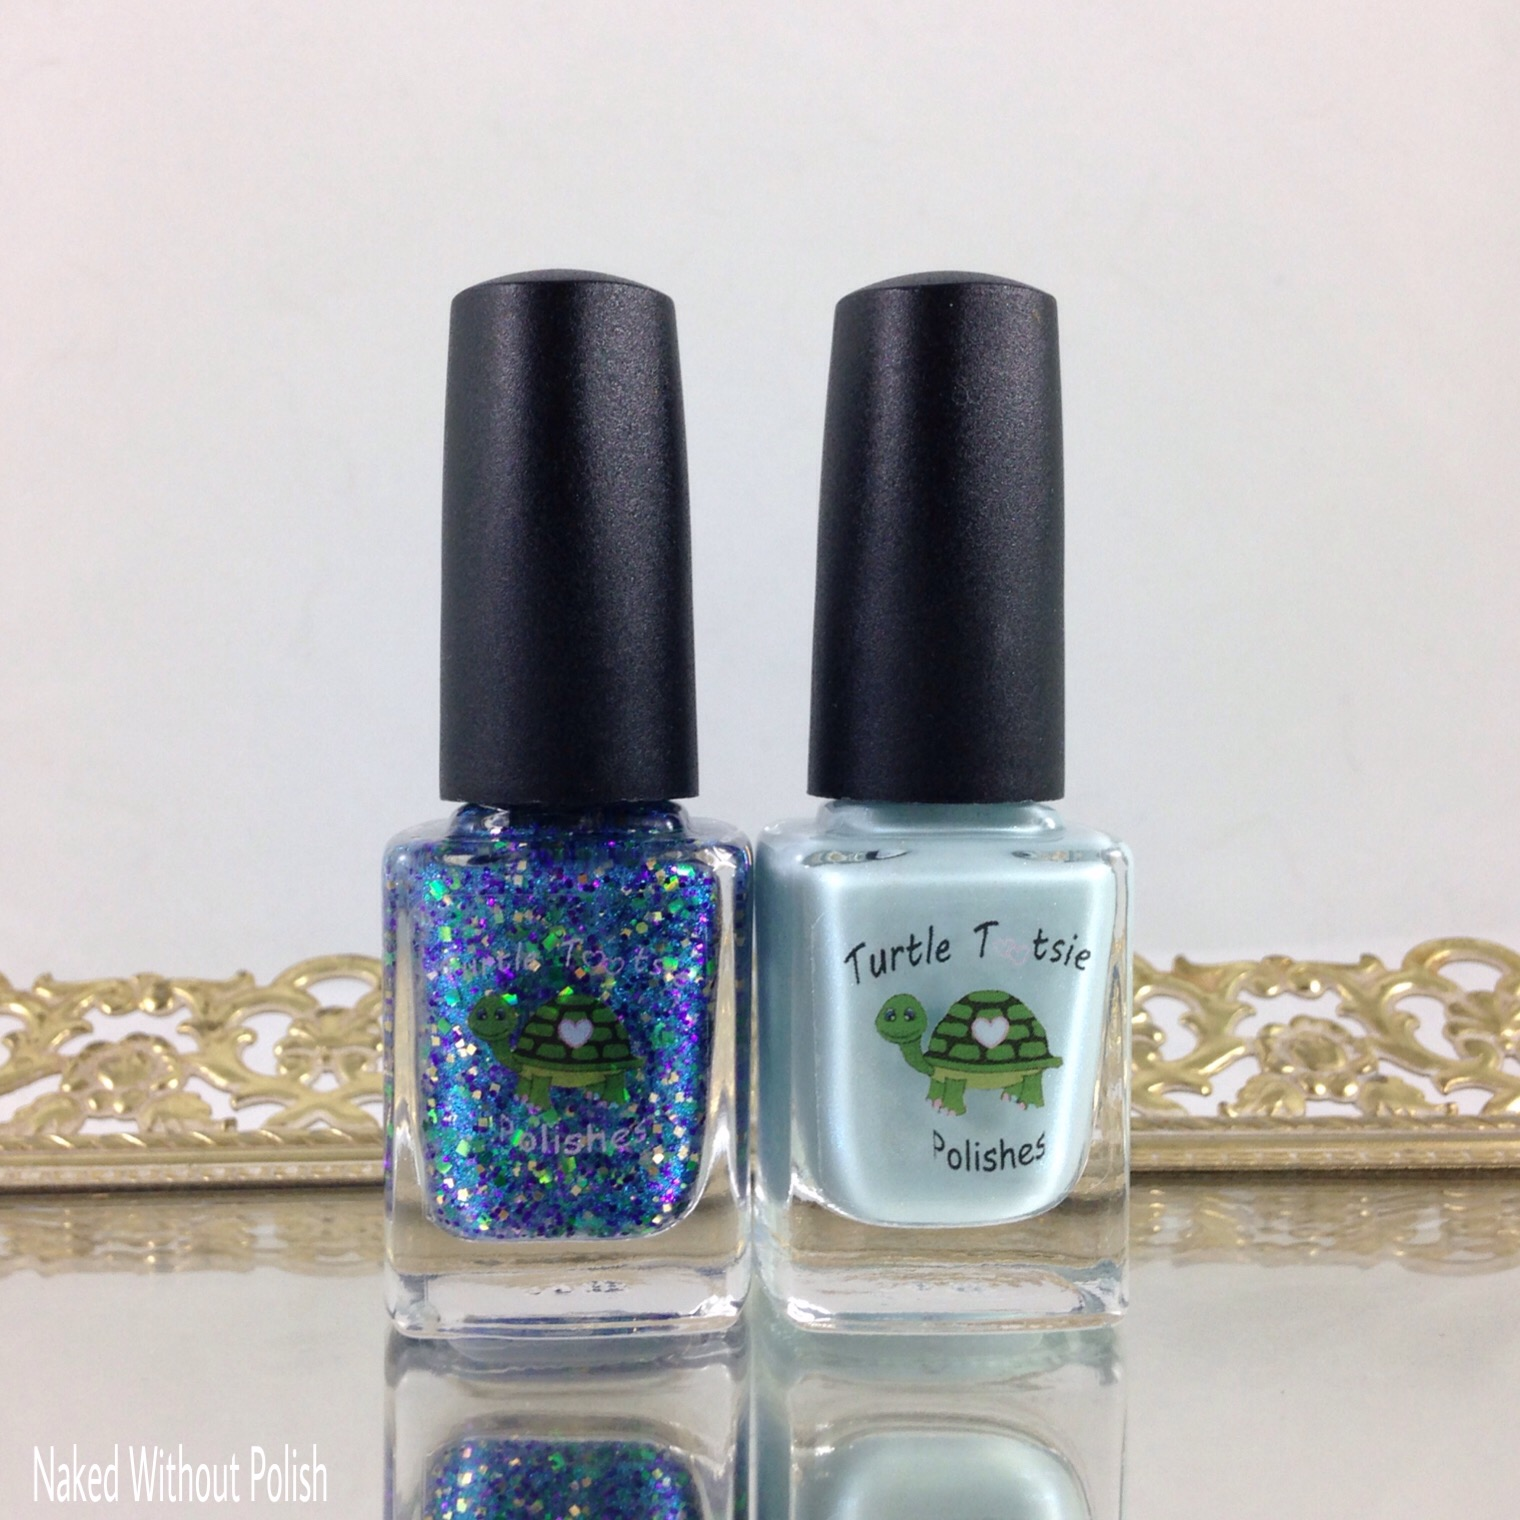 Turtle-Tootsie-Polishes-Elvenspun-Duo-1